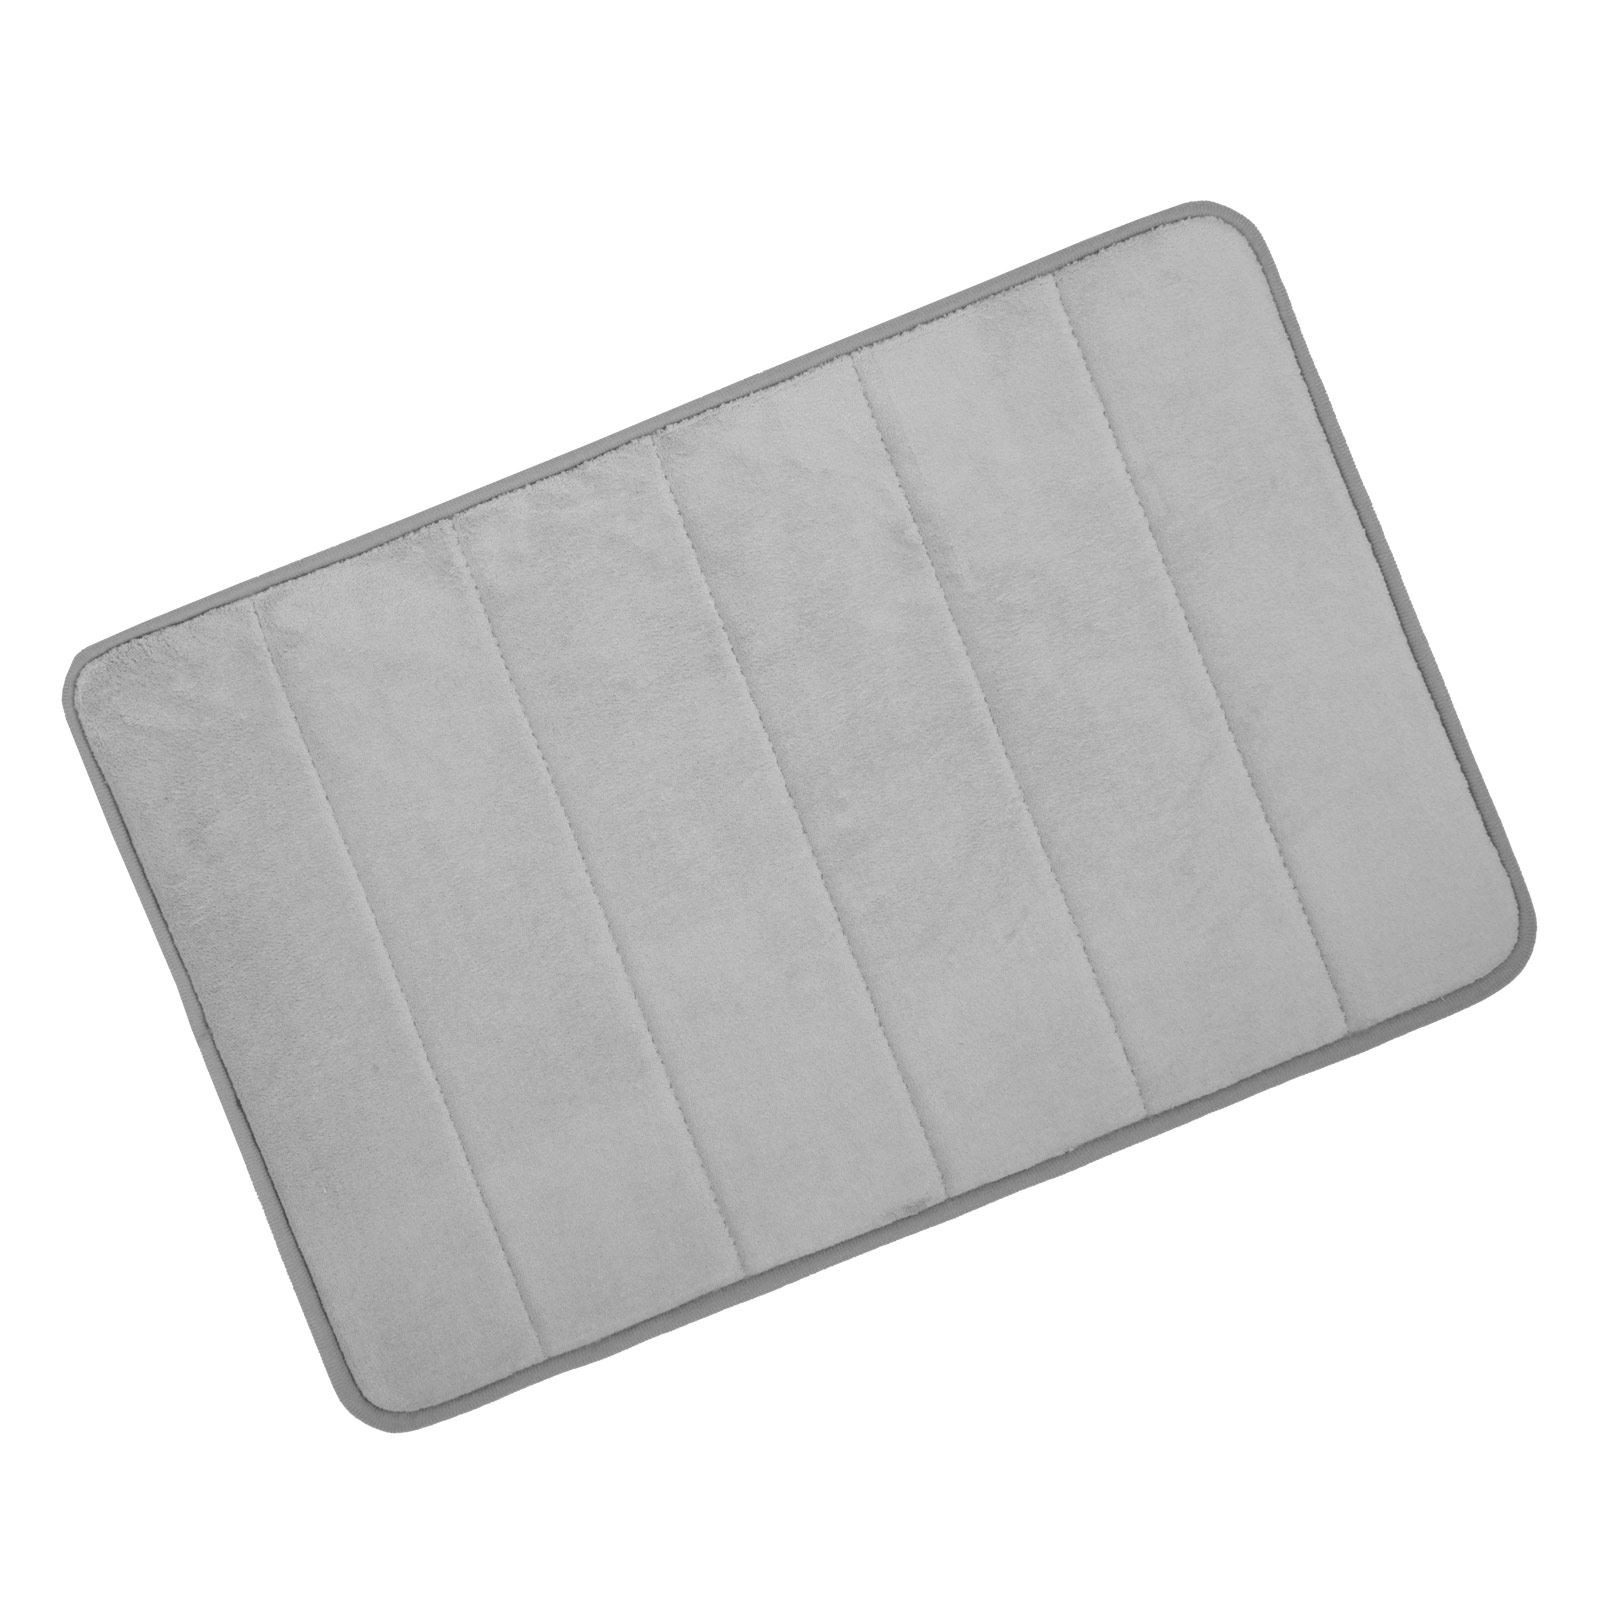 Microfibre Memory Foam Bathroom Shower Bath Mat With Non